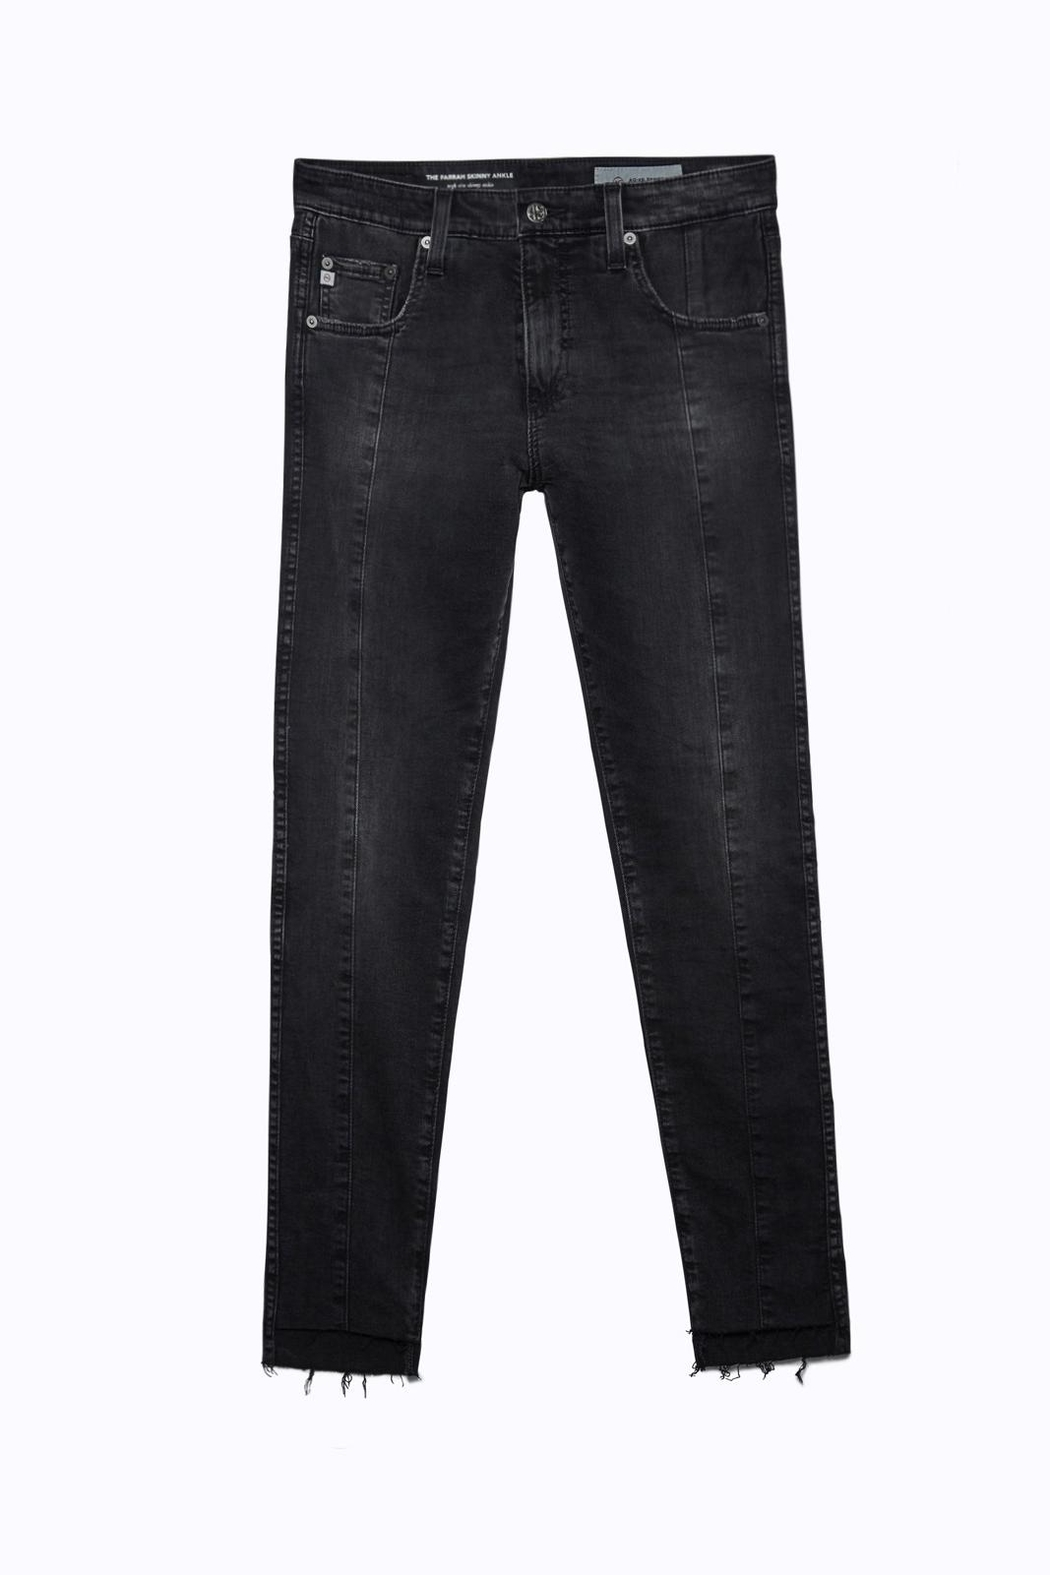 AG Adriano Goldschmied Farrah Skinny Ankle Jeans - Main Image